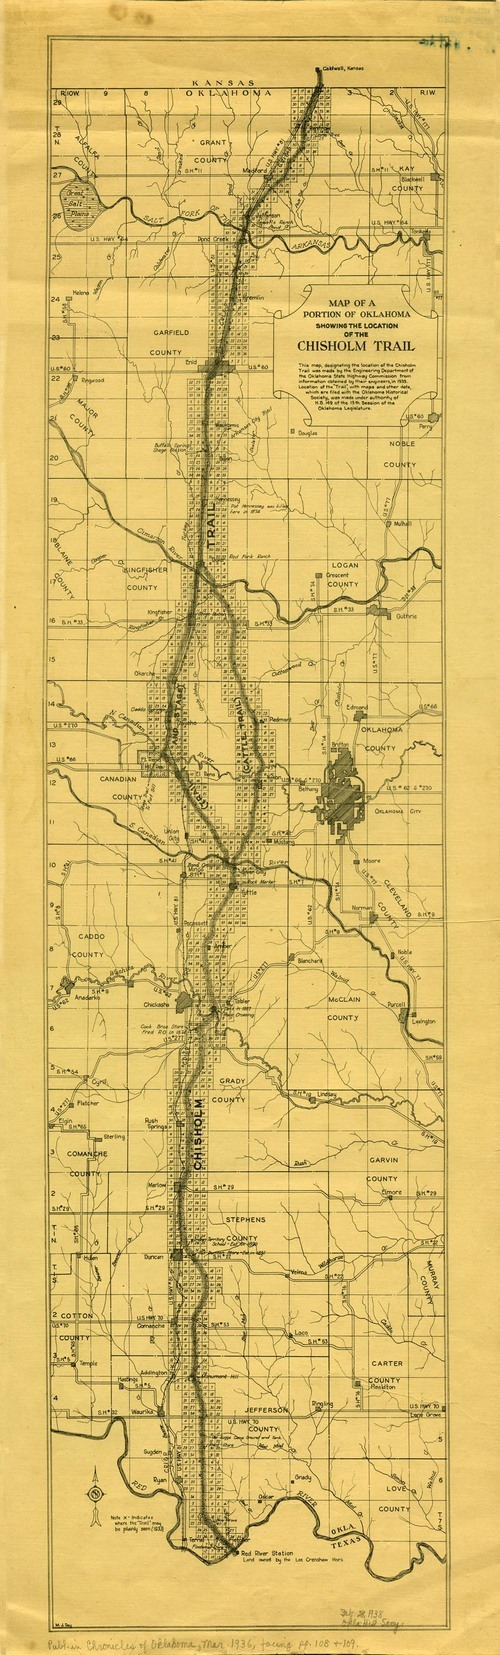 Map of a portion of Oklahoma showing the location of the Chisholm Trail - Page